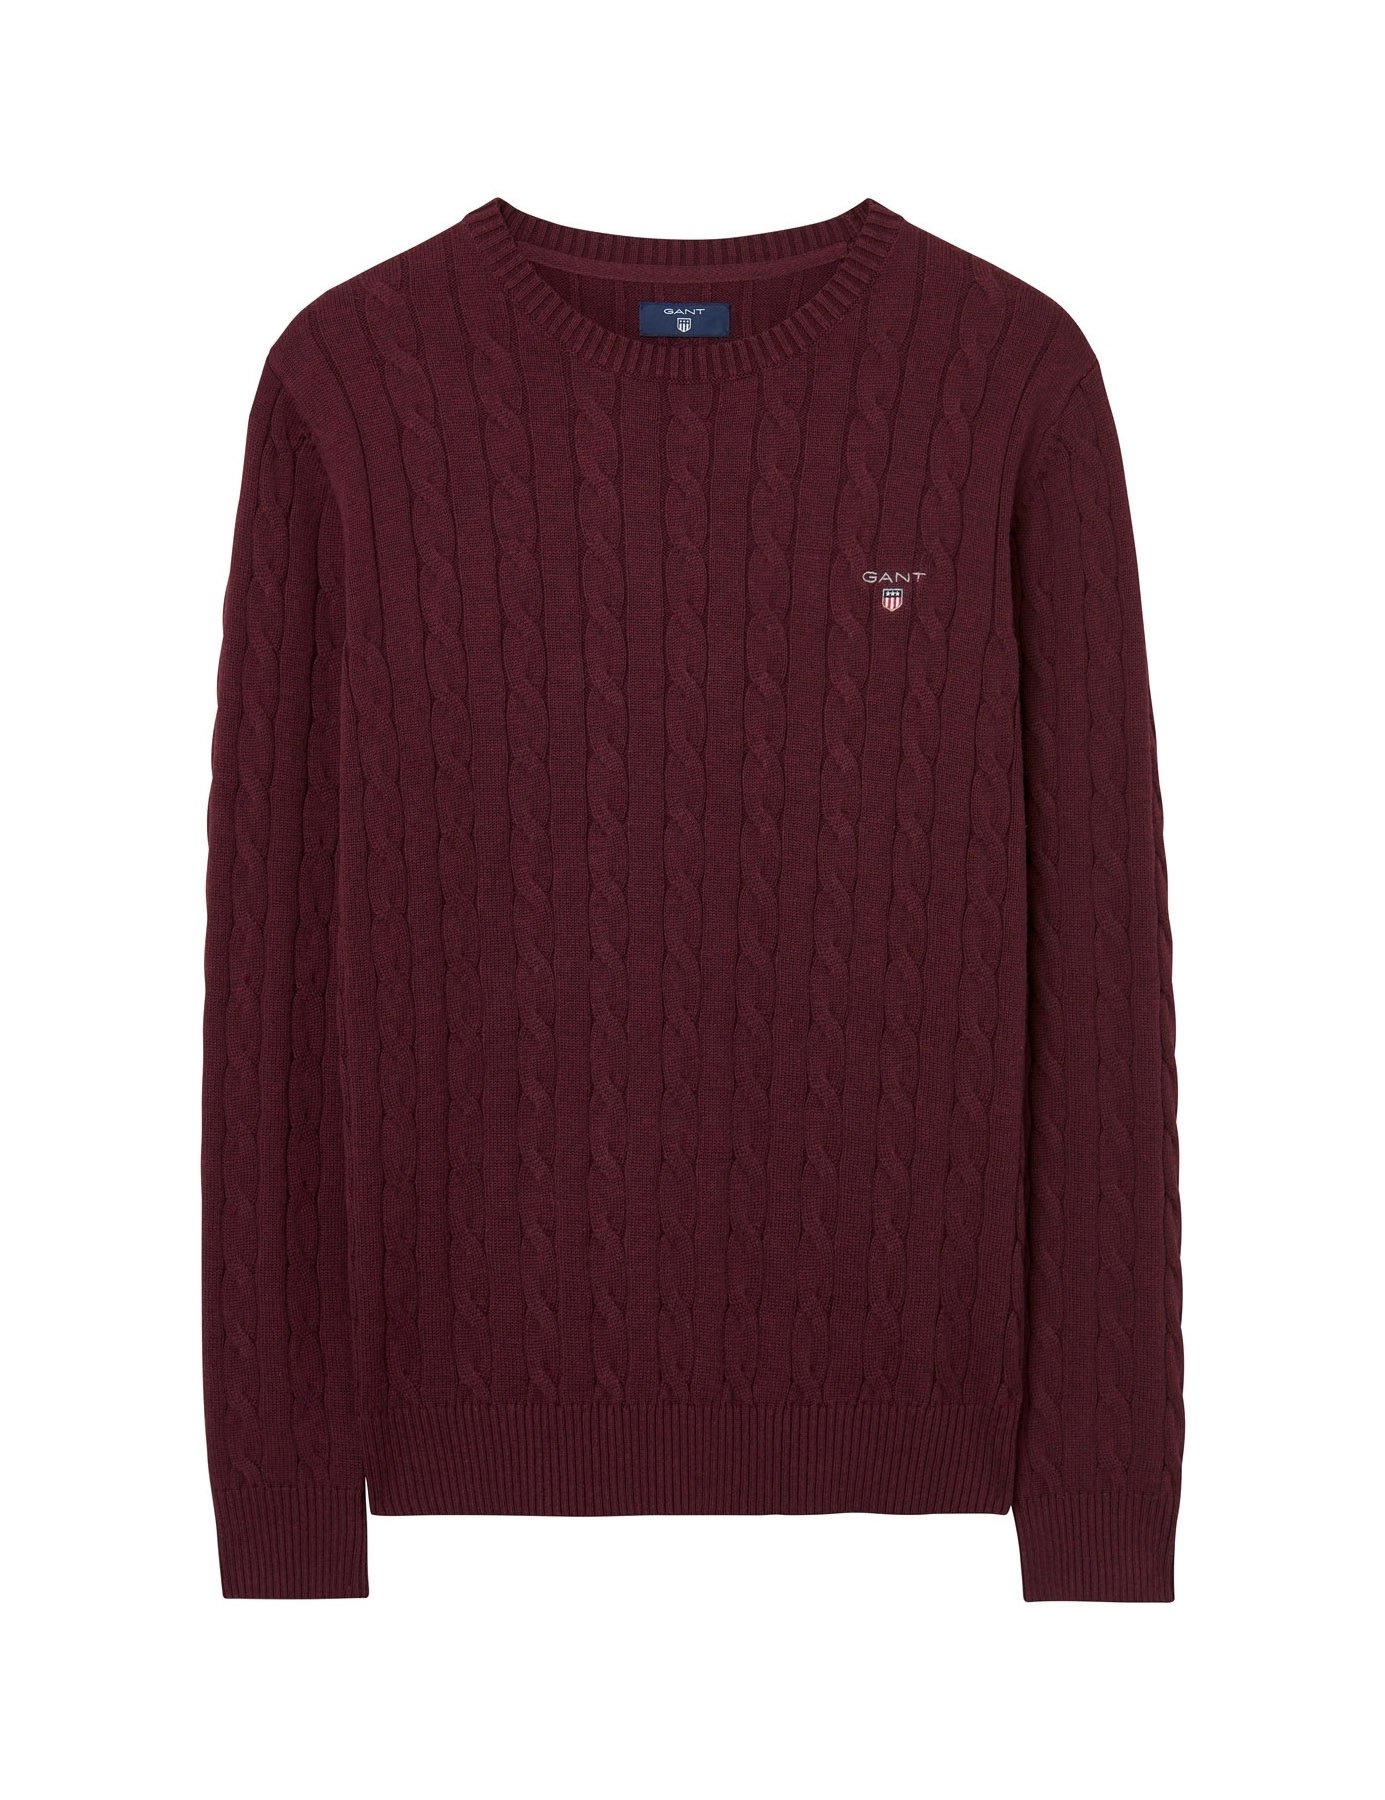 Gant Men's Men's Burgundy Cotton Cable Sweater in Size L Red